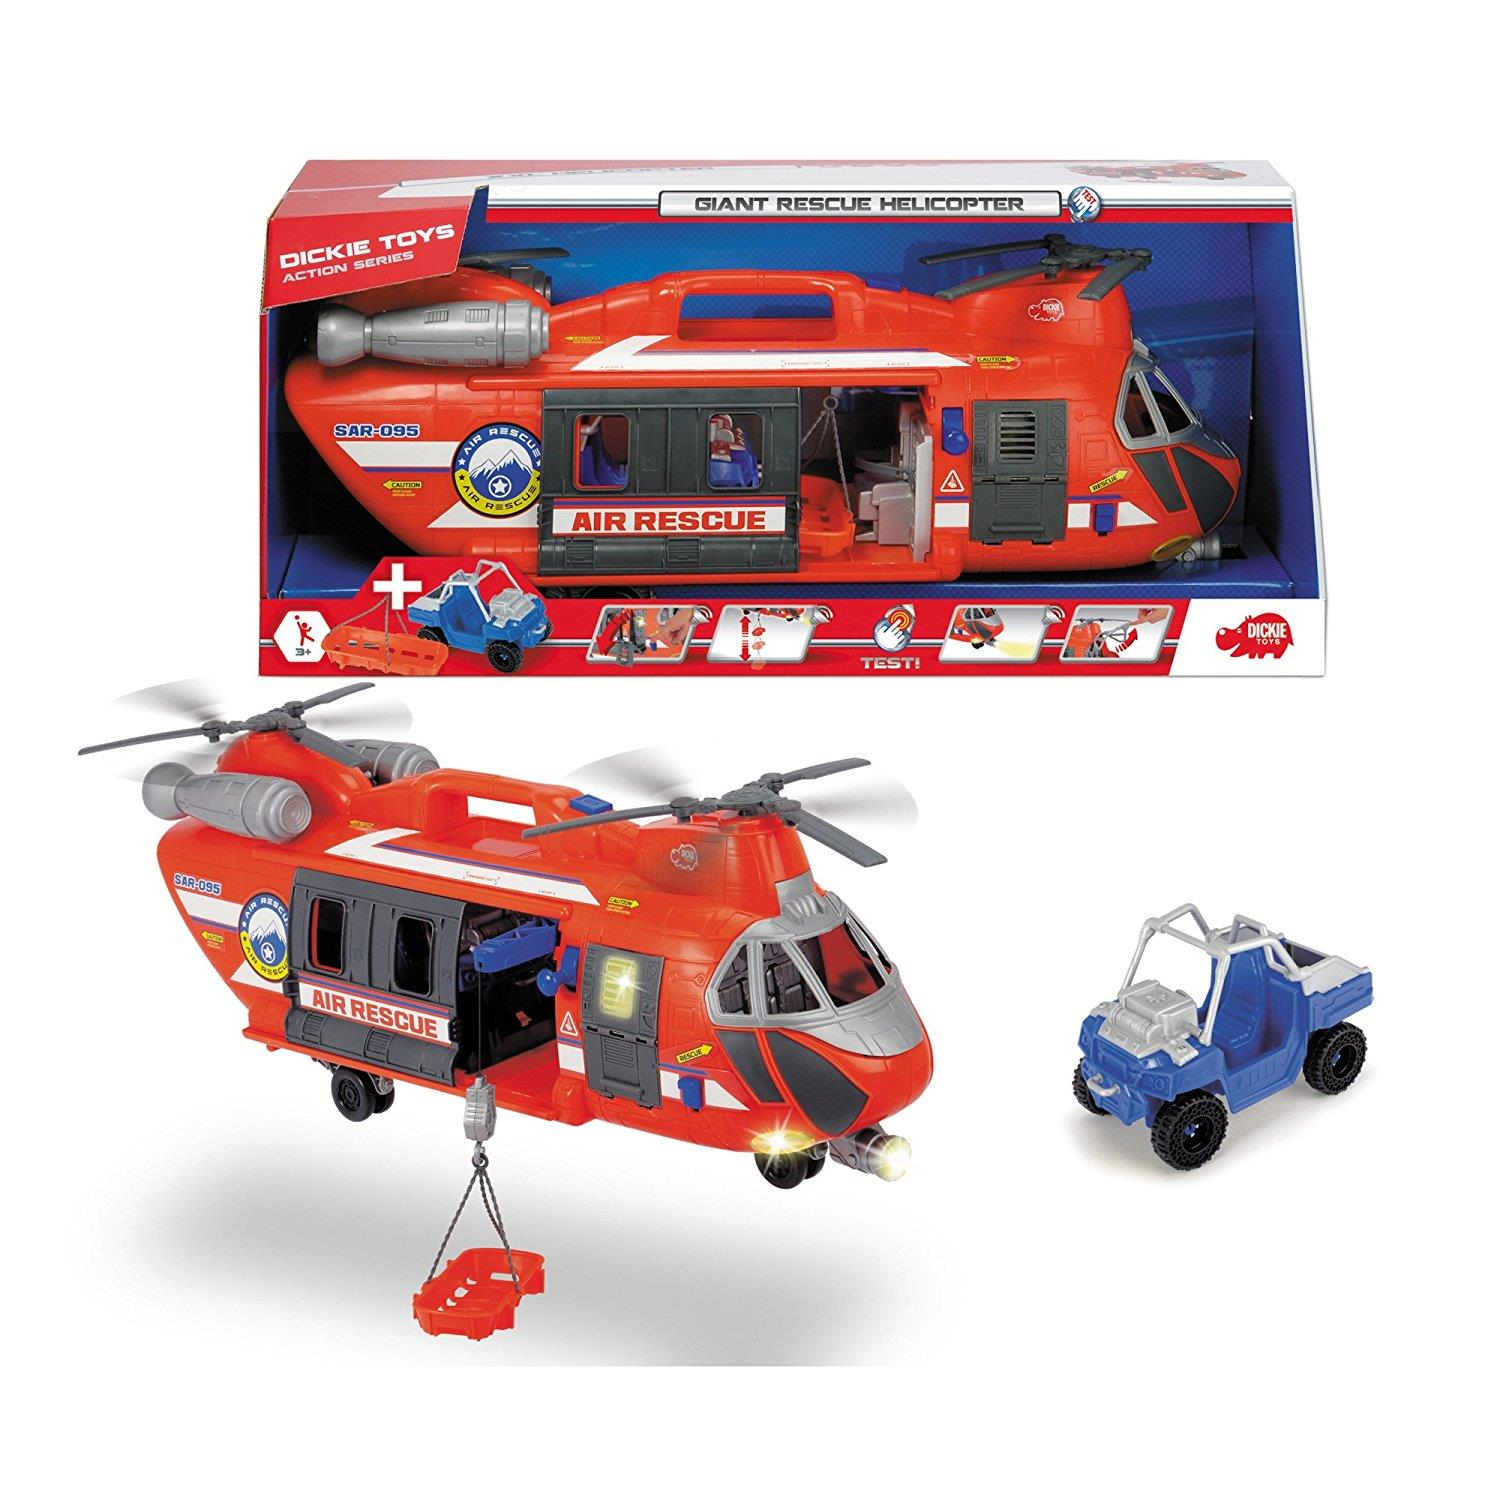 Playmobil Küche Toys R Us Dickie 203309000 Giant Rescue Helikopter